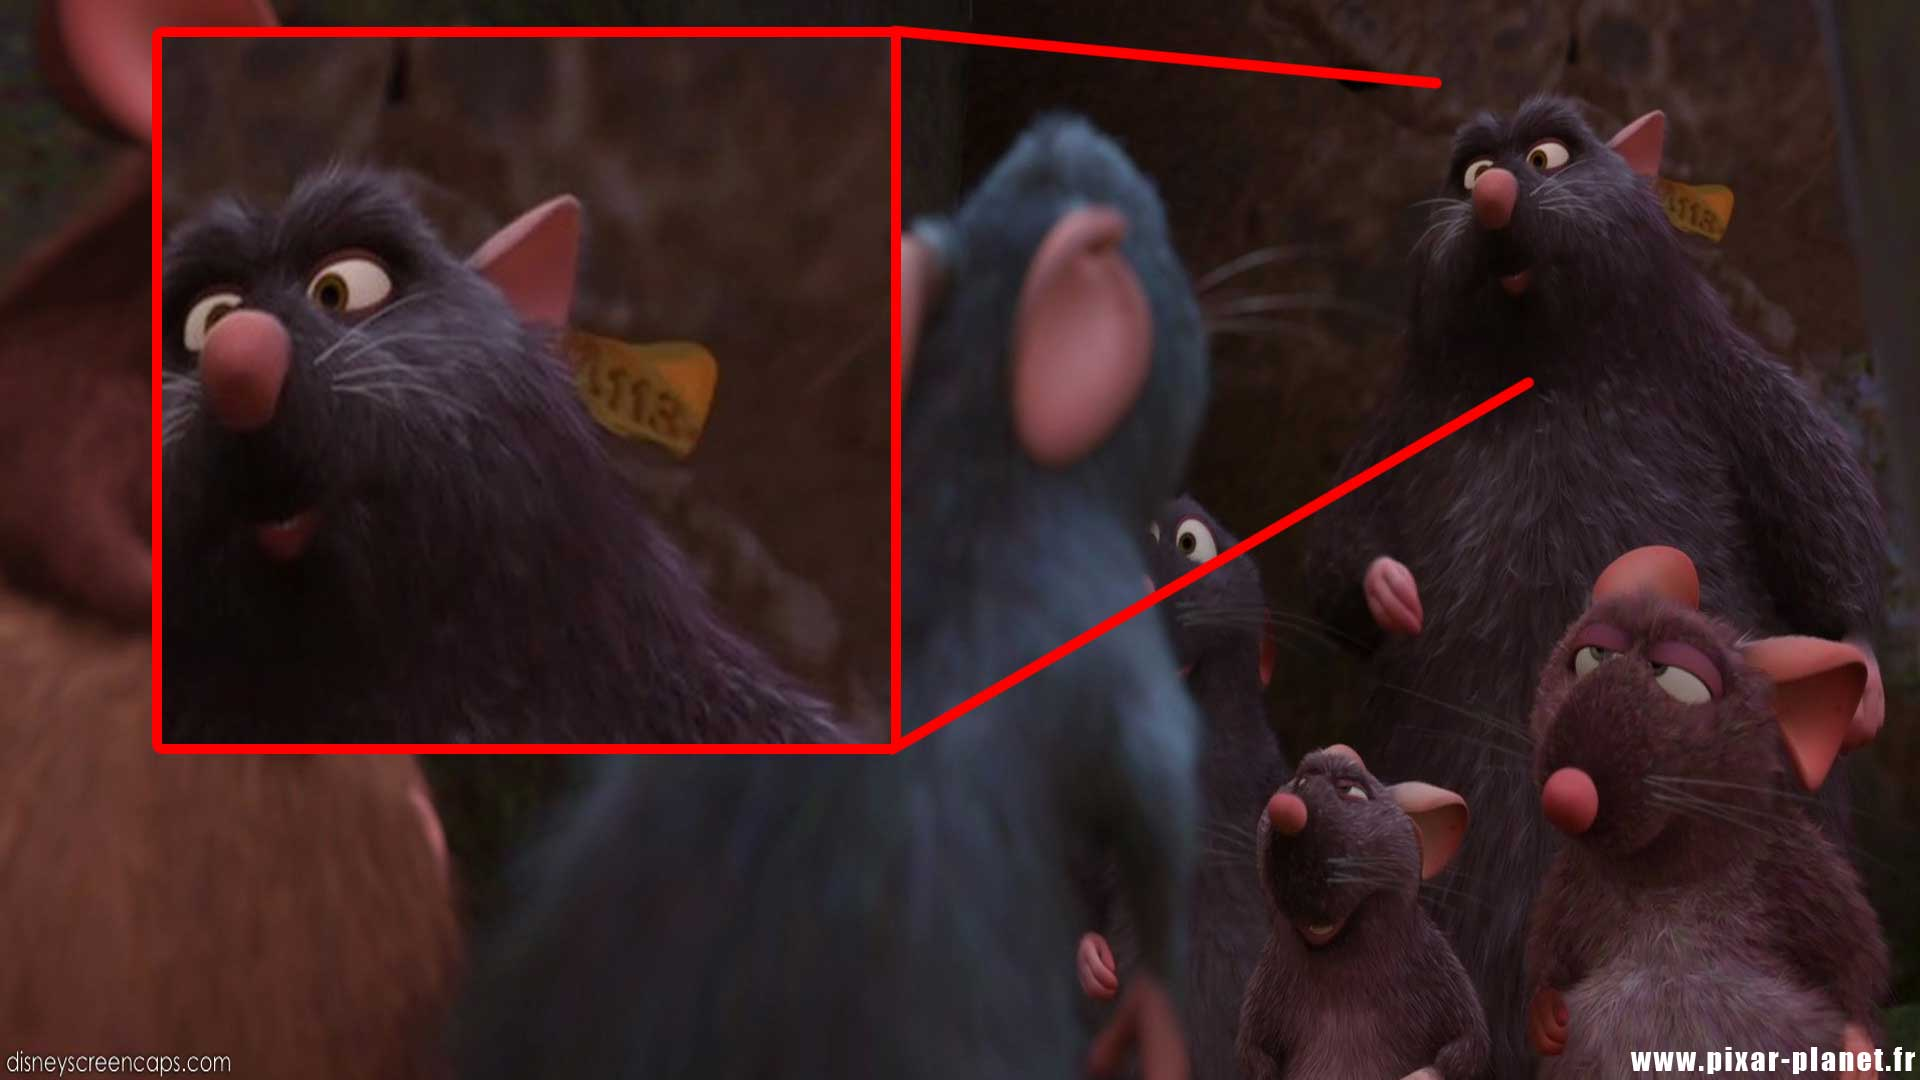 There's An Easter Egg Hidden In All Disney Movies And Much More